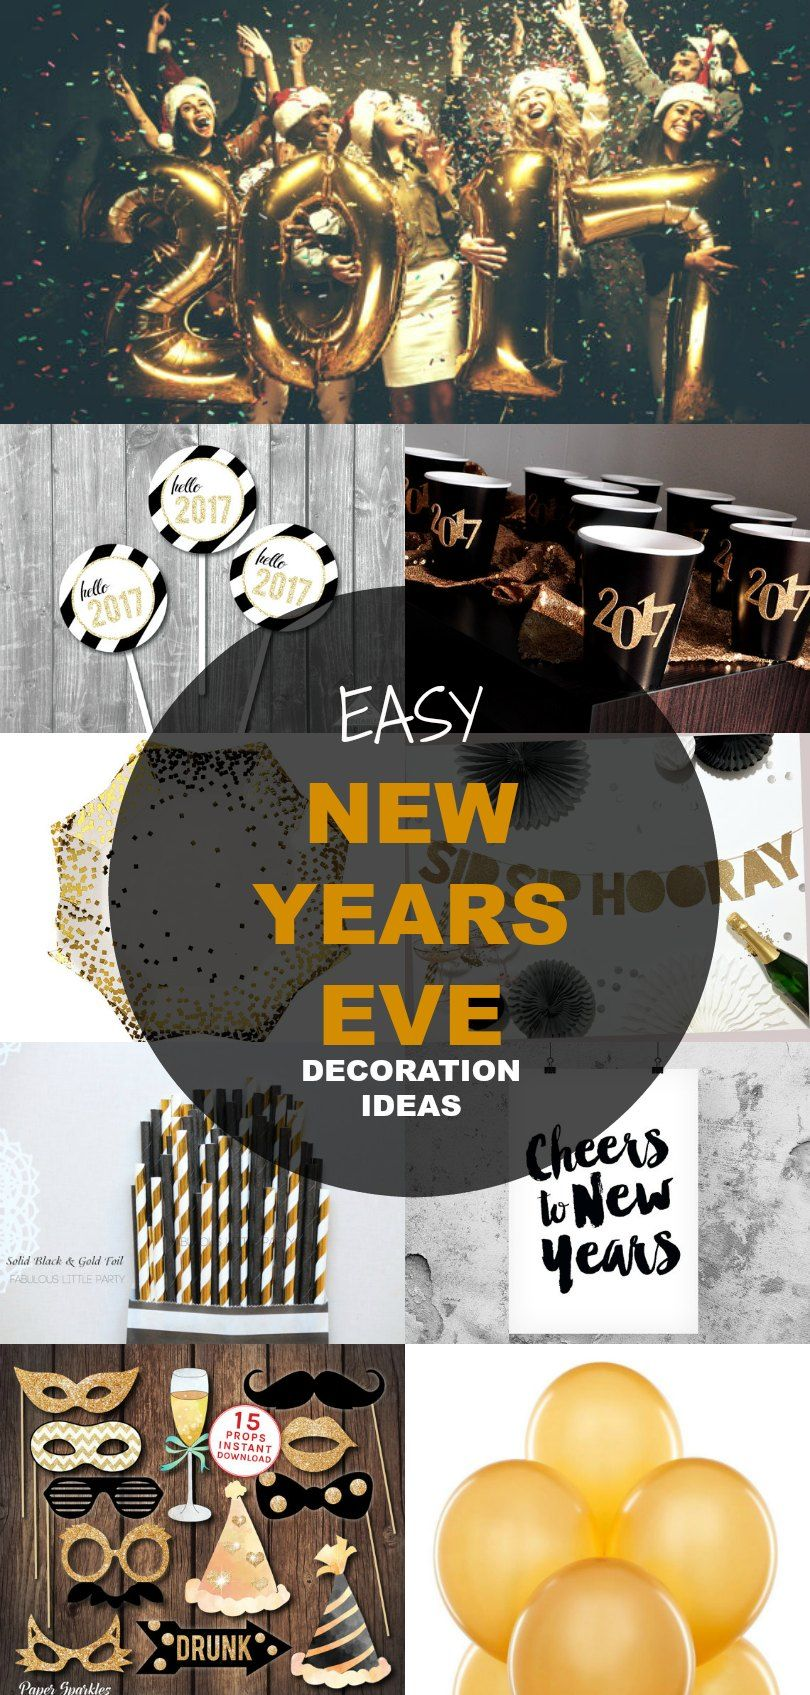 21 New Years Eve Decoration Ideas New years eve